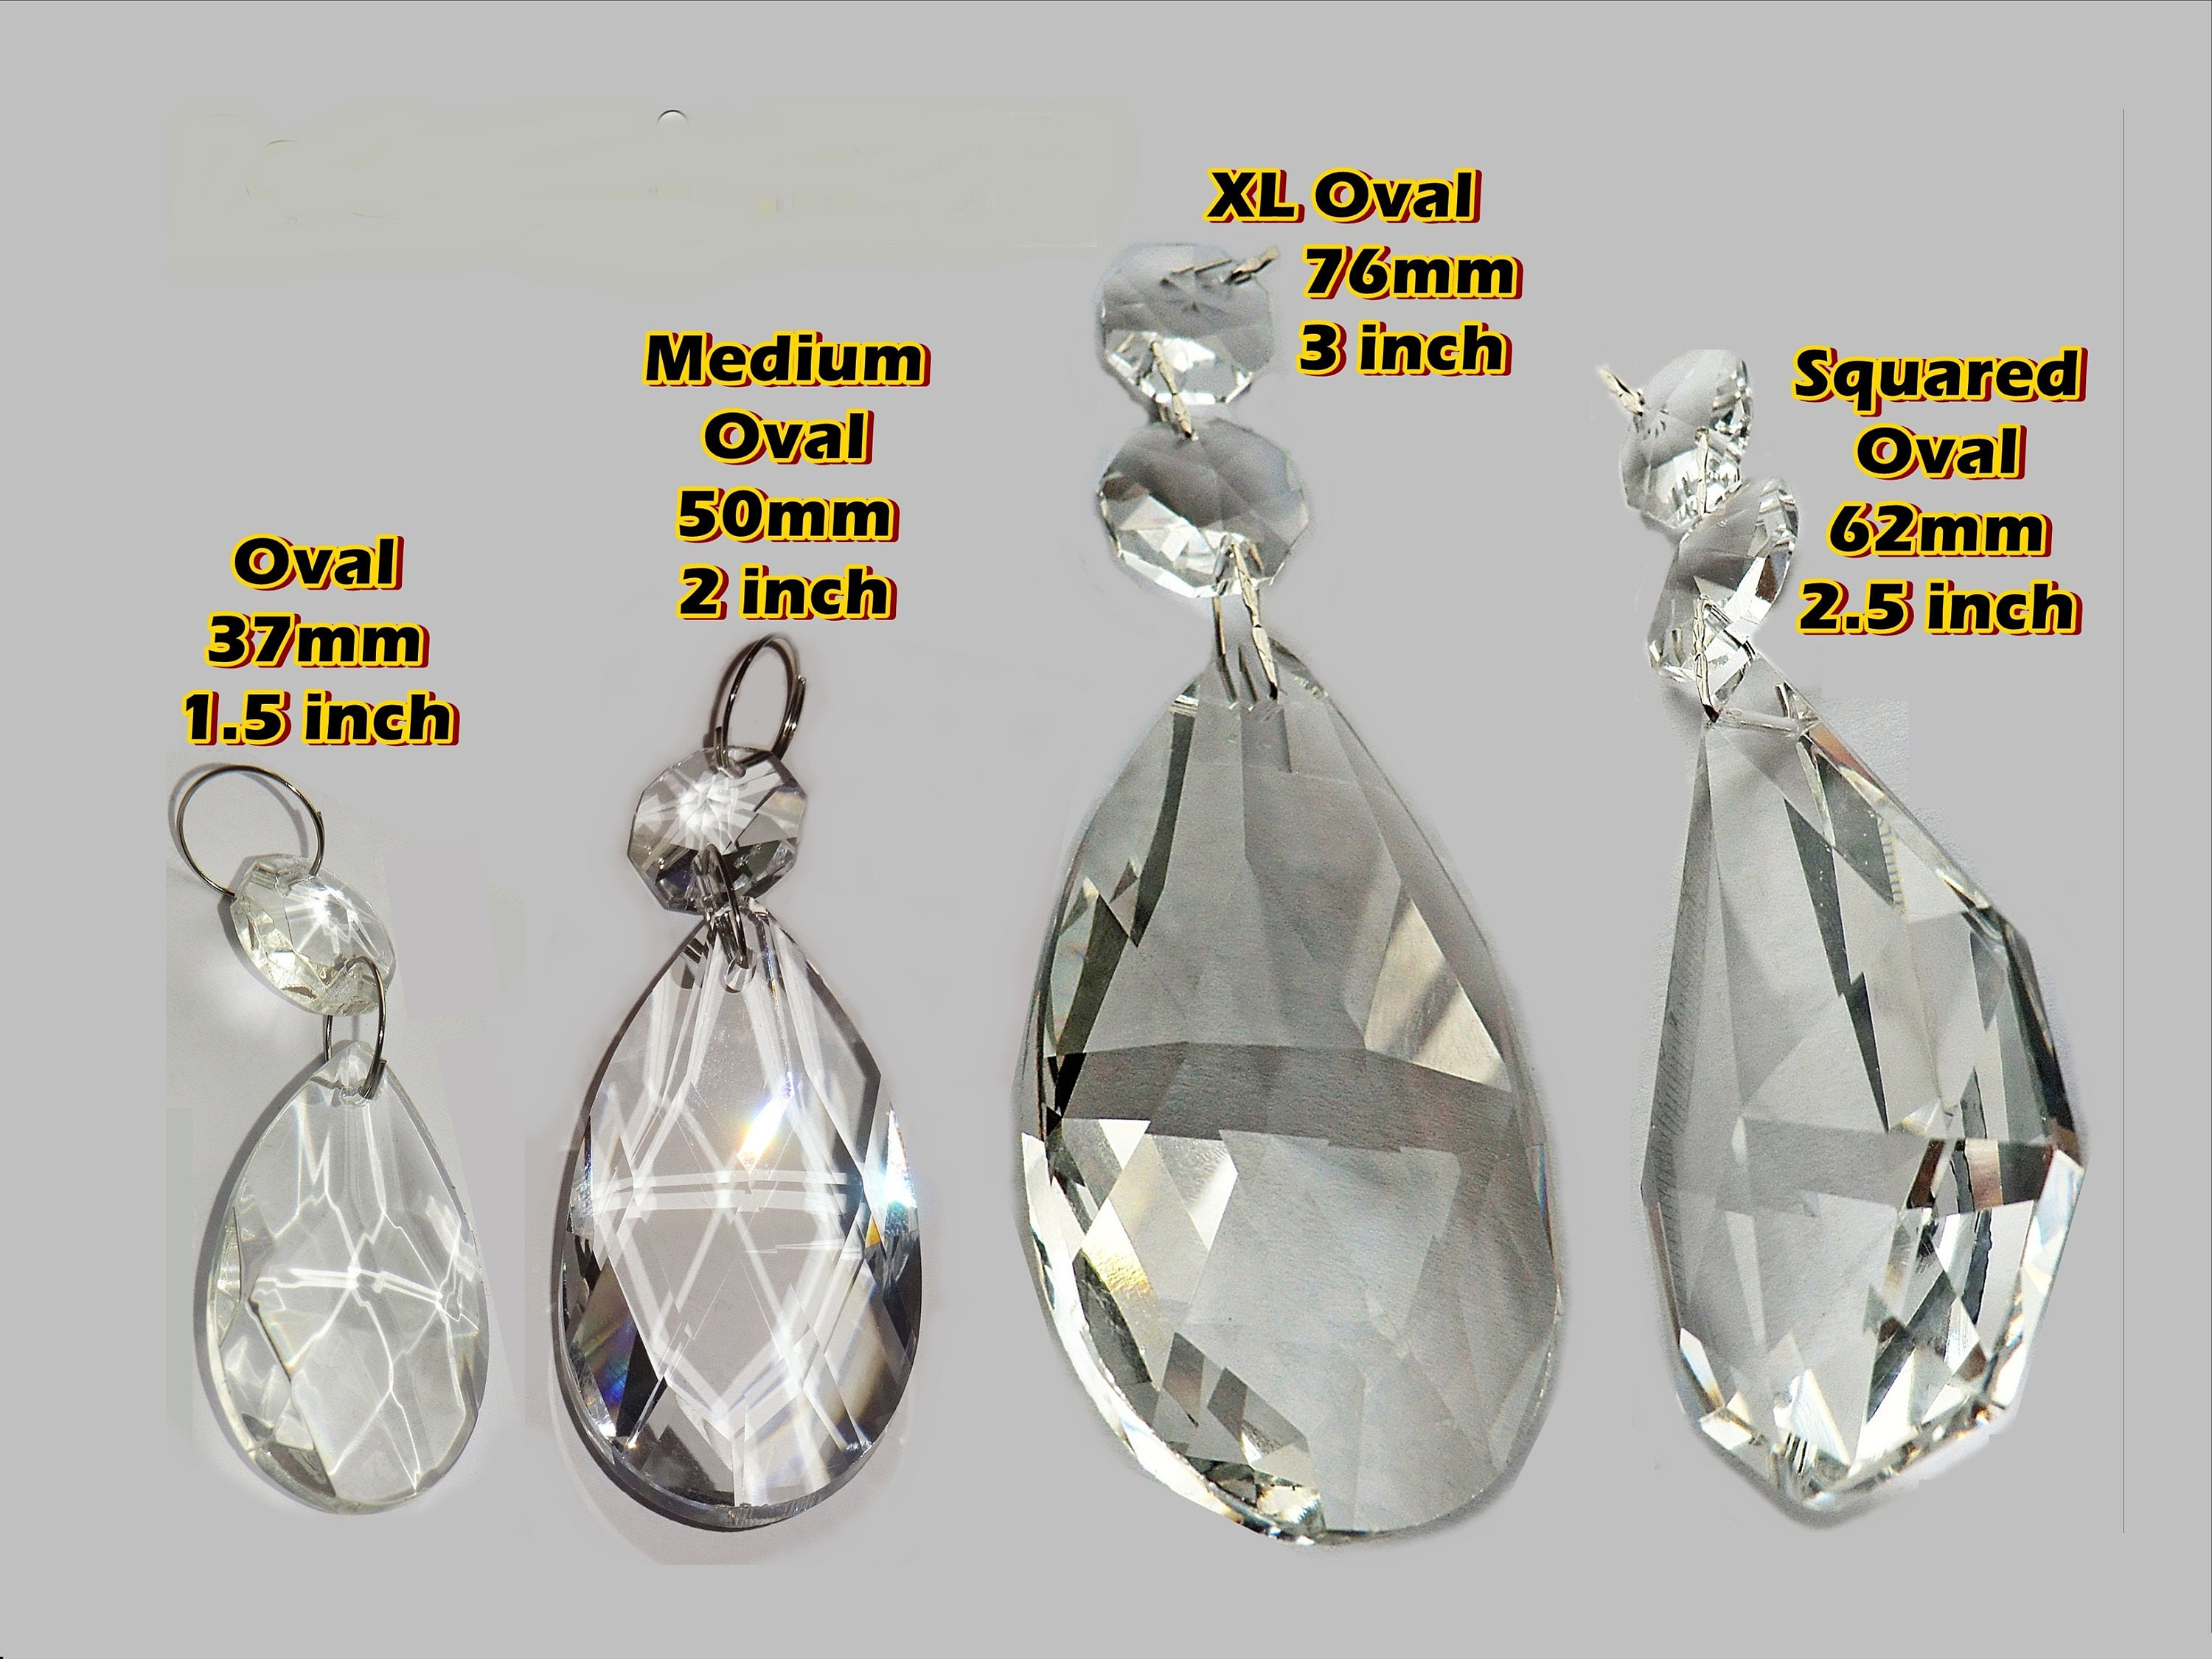 size prisms schonbek full crystals orleans difference between canada strass supplies for ny lighting floor chandelier parts lights empire crystal lamp plattsburgh swarovski catalog chandeliers table worldwide of new lamps